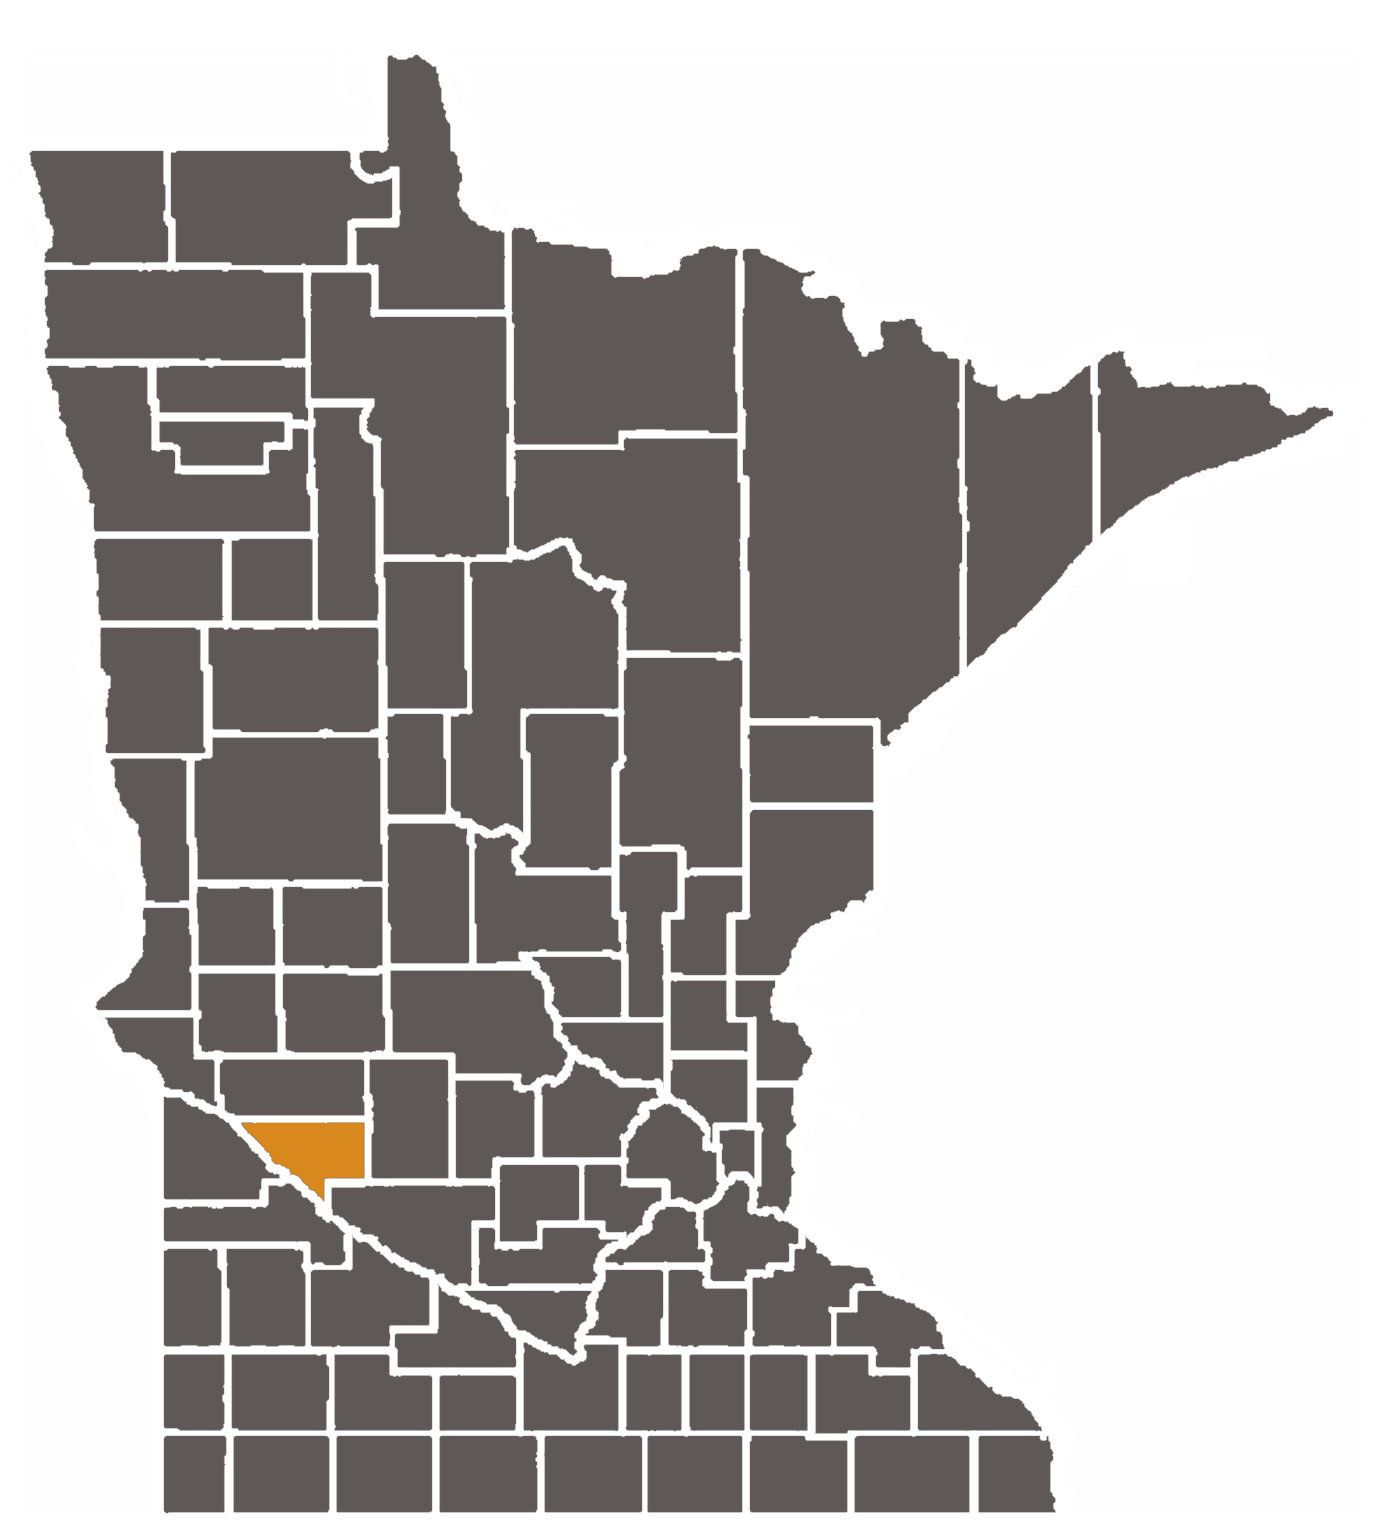 Minnesota map with Chippewa County highlighted.